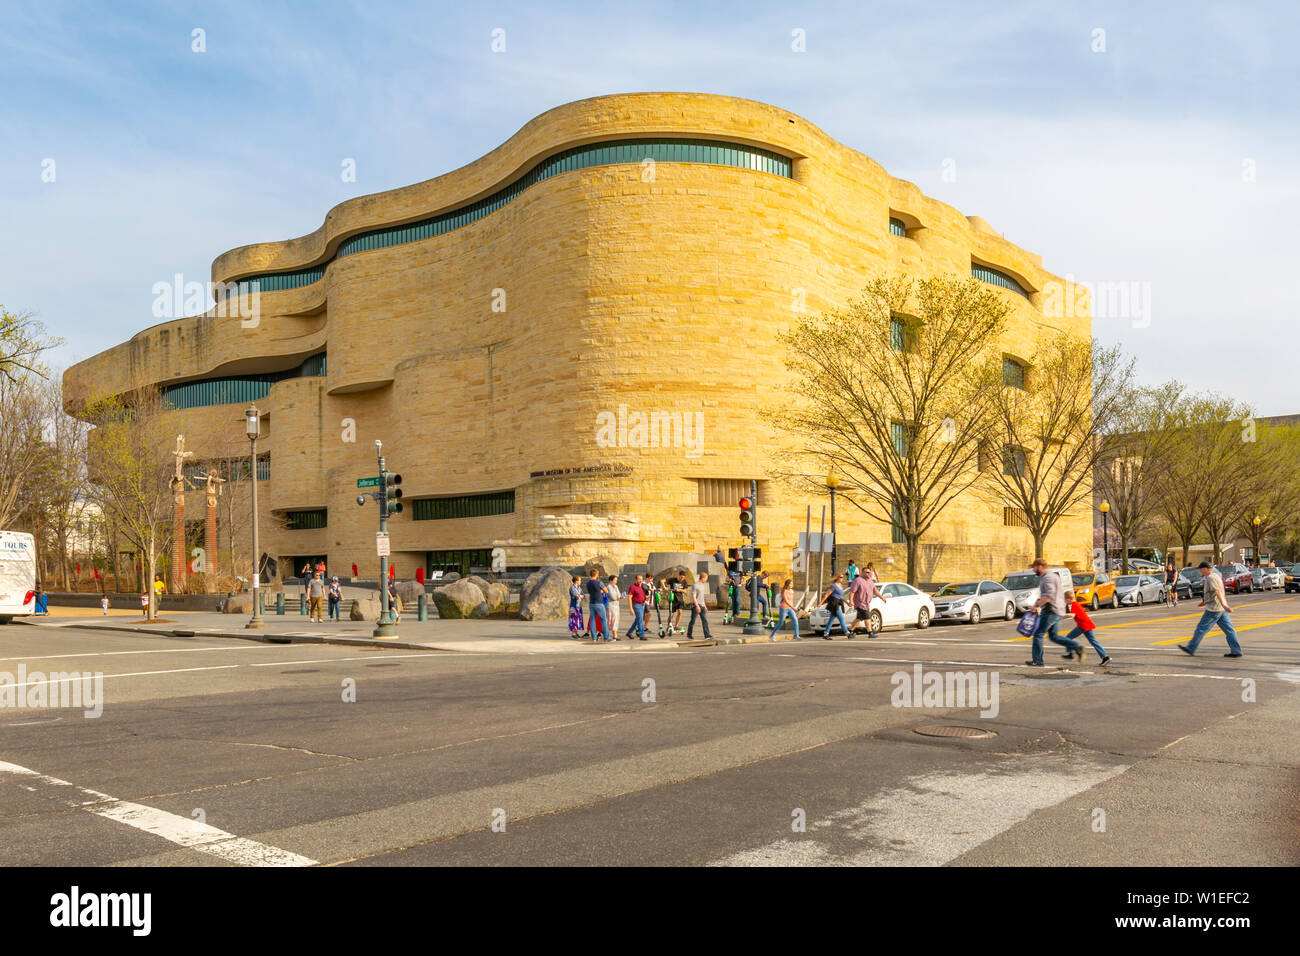 View of National Museum of the American Indian, Washington D.C., United States of America, North America - Stock Image